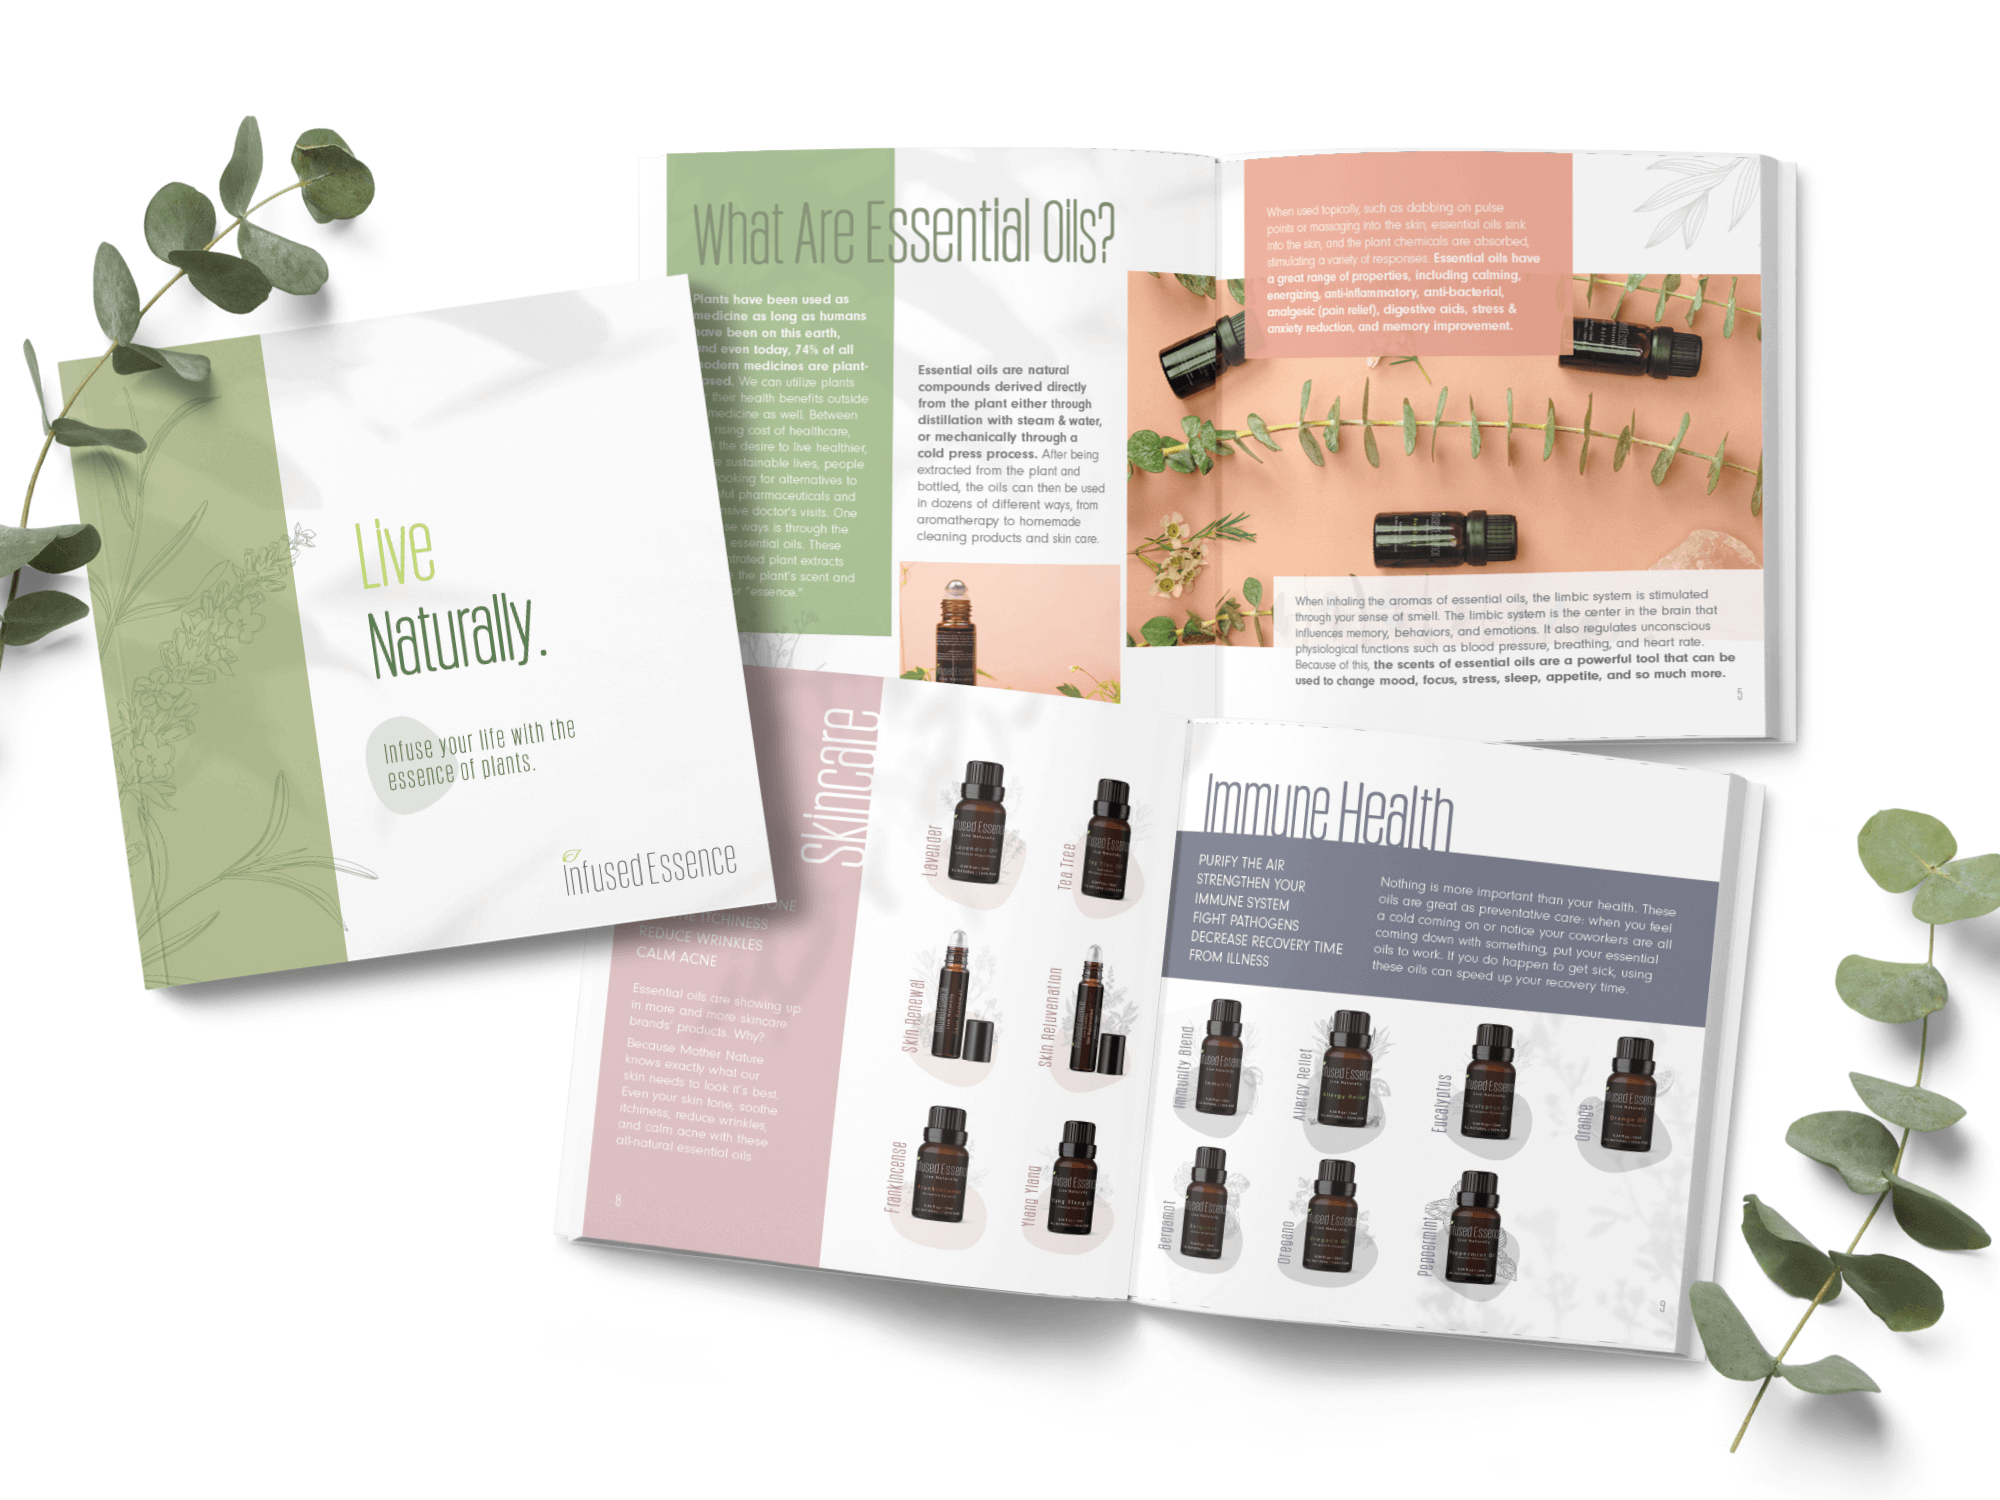 Clean essential oil company Infused Essence print layout design.